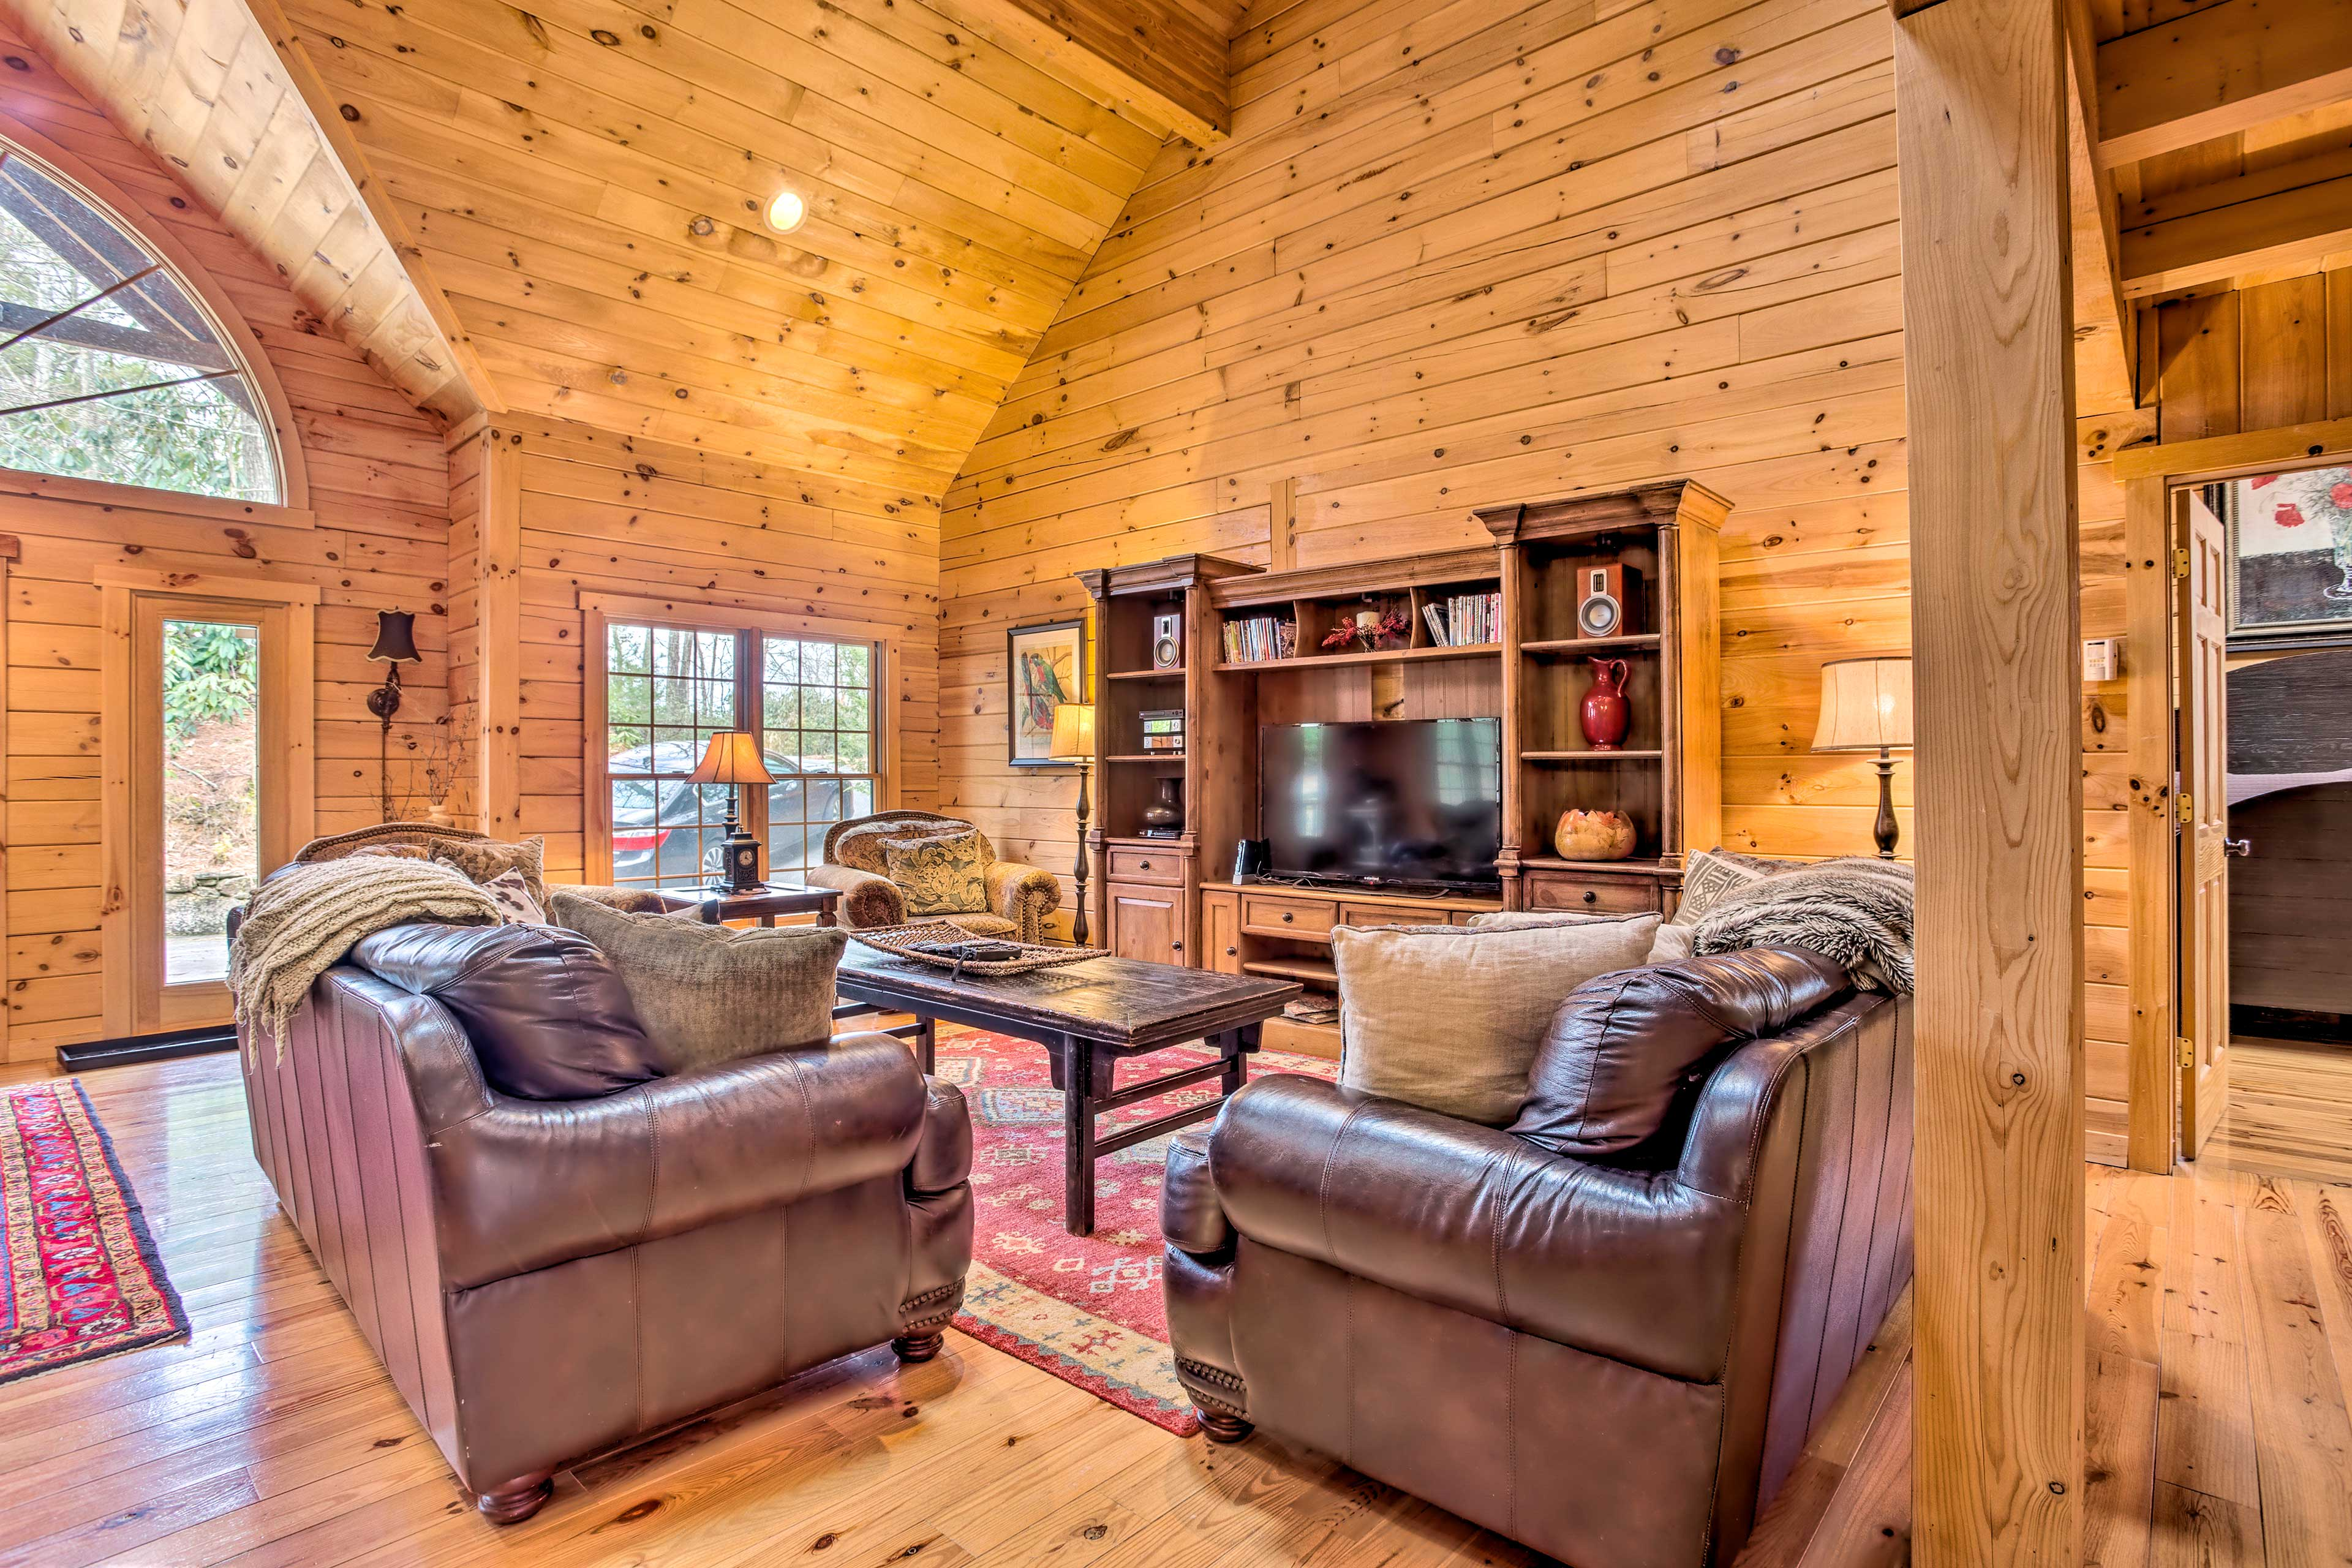 The spacious layout makes it easy for family and friends to socialize.